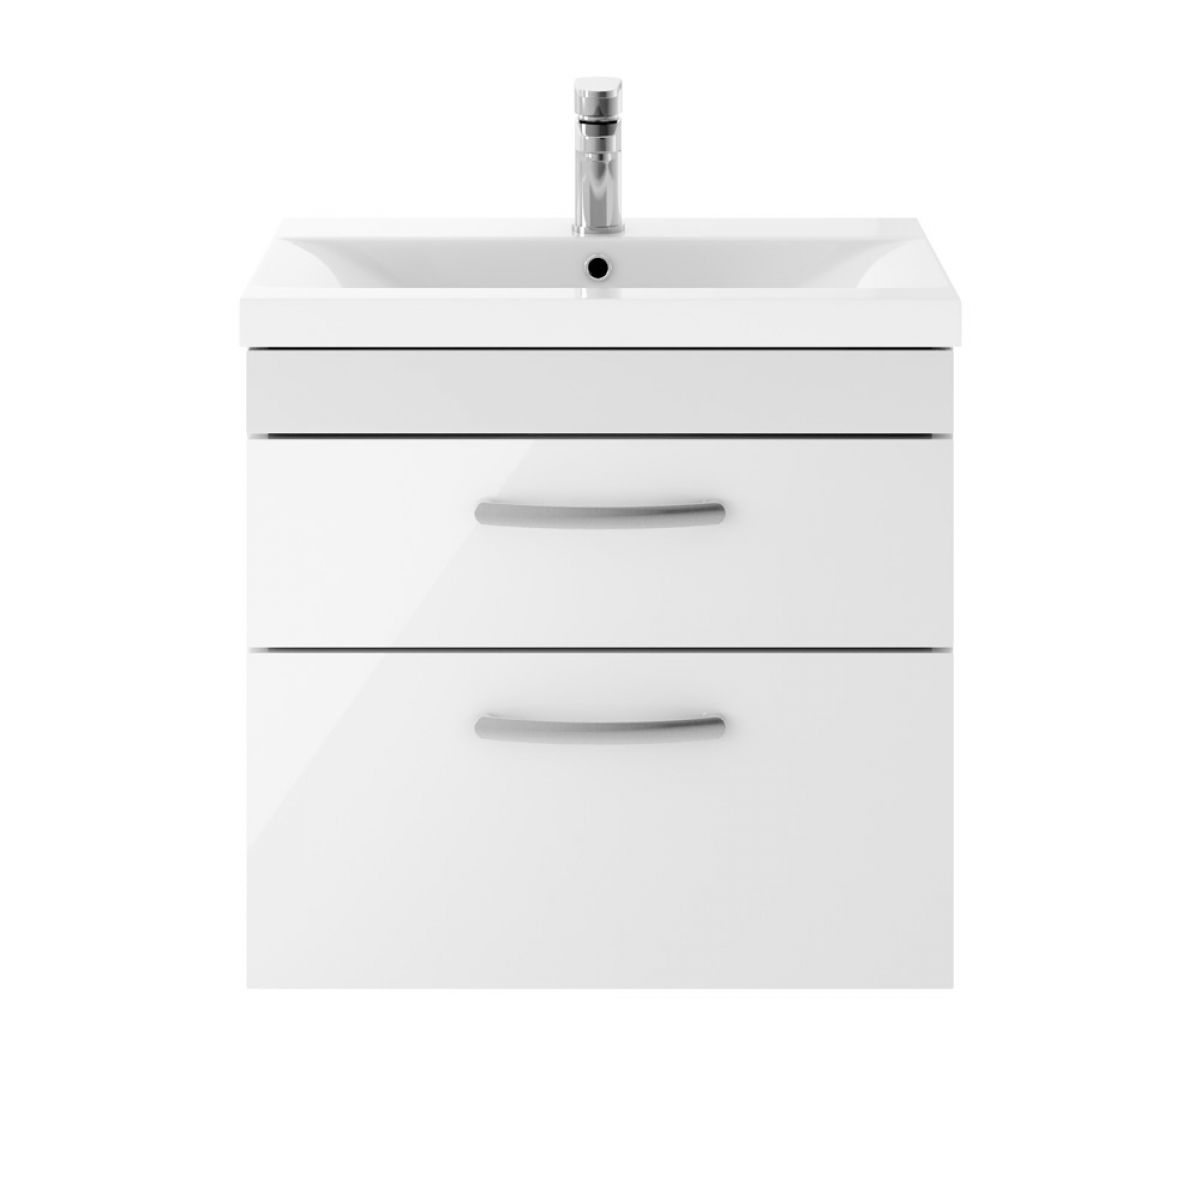 Premier Athena Gloss White 2 Drawer Wall Hung Vanity Unit 600mm with Mid Edge Basin